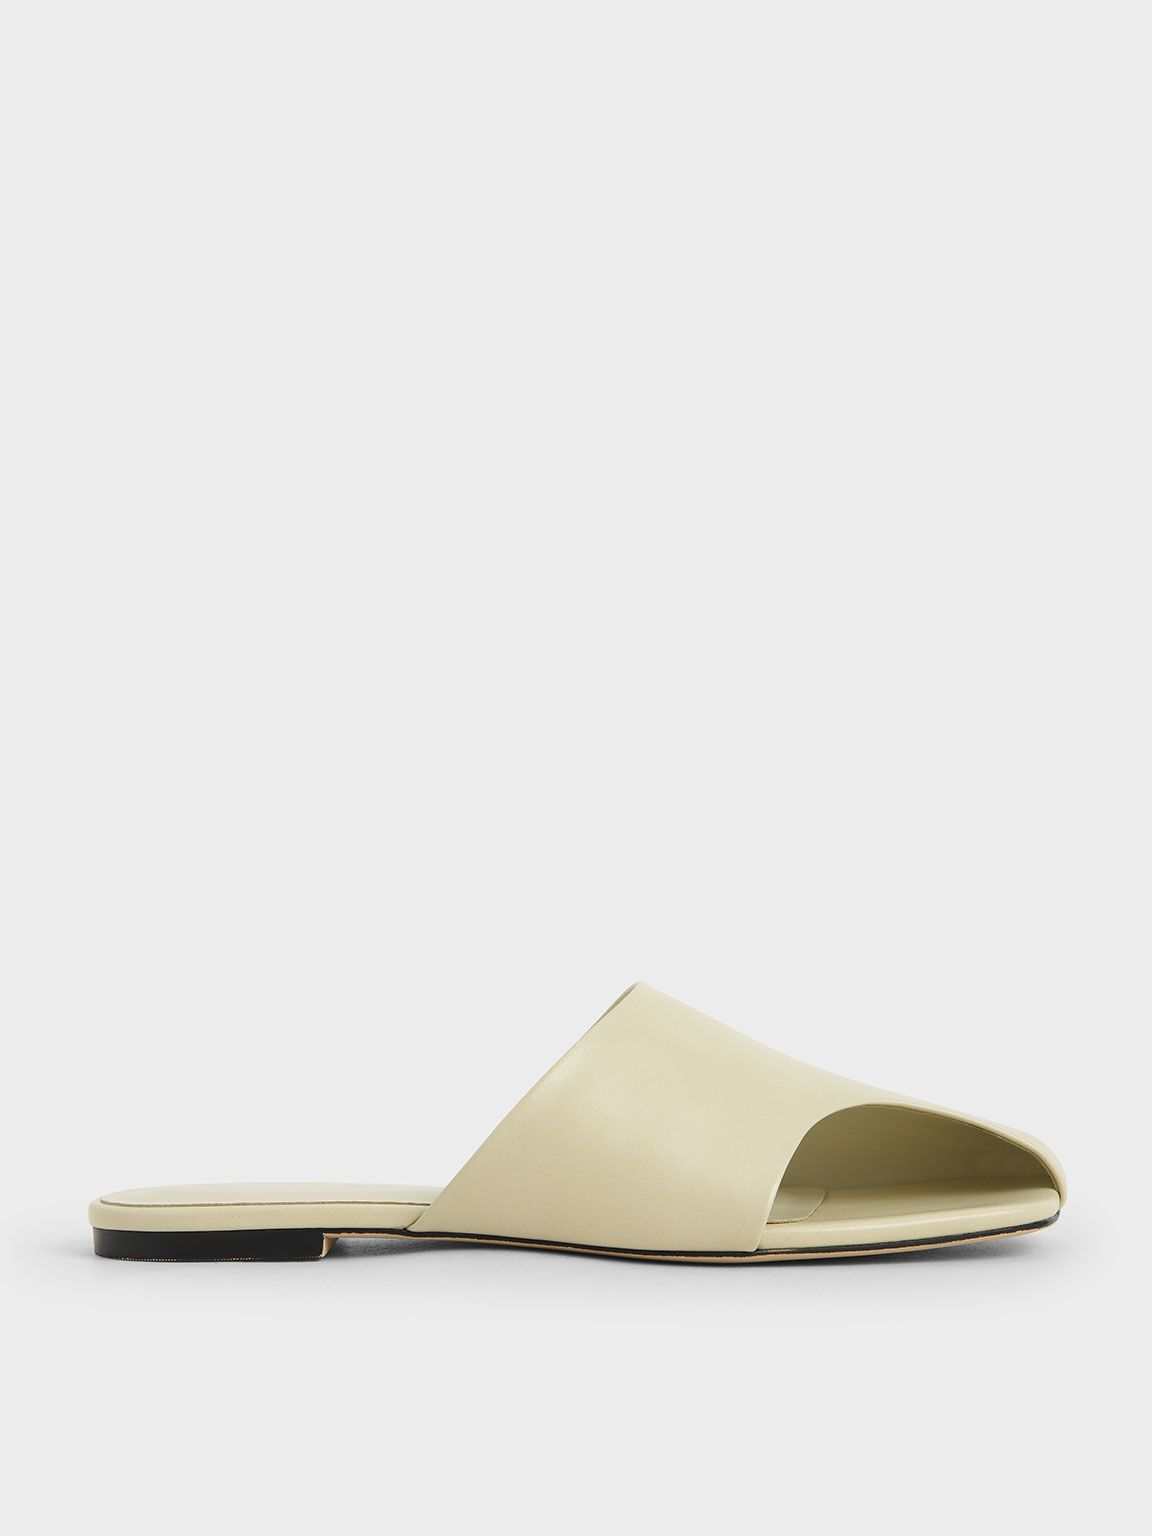 Charles and Keith Cut-Out Slide Sandals